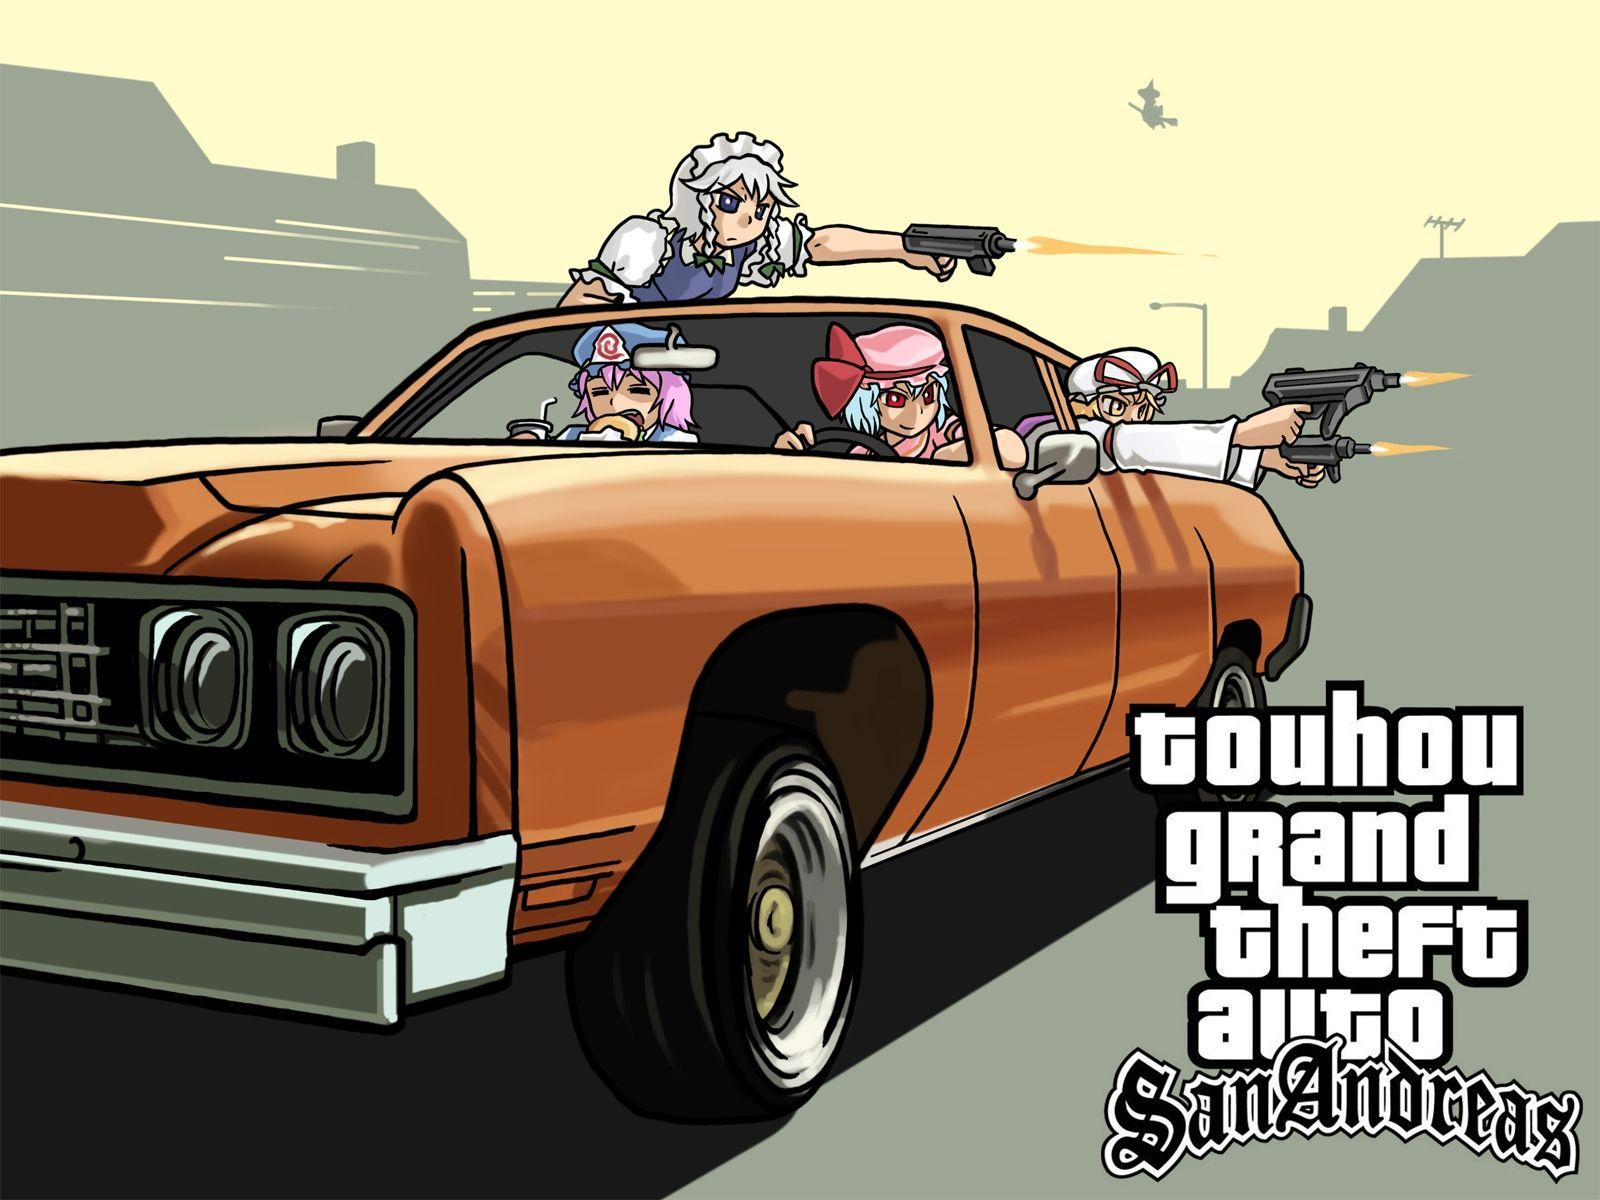 Wallpapers Gta, Grand theft auto, San andreas, Car, Anime HD